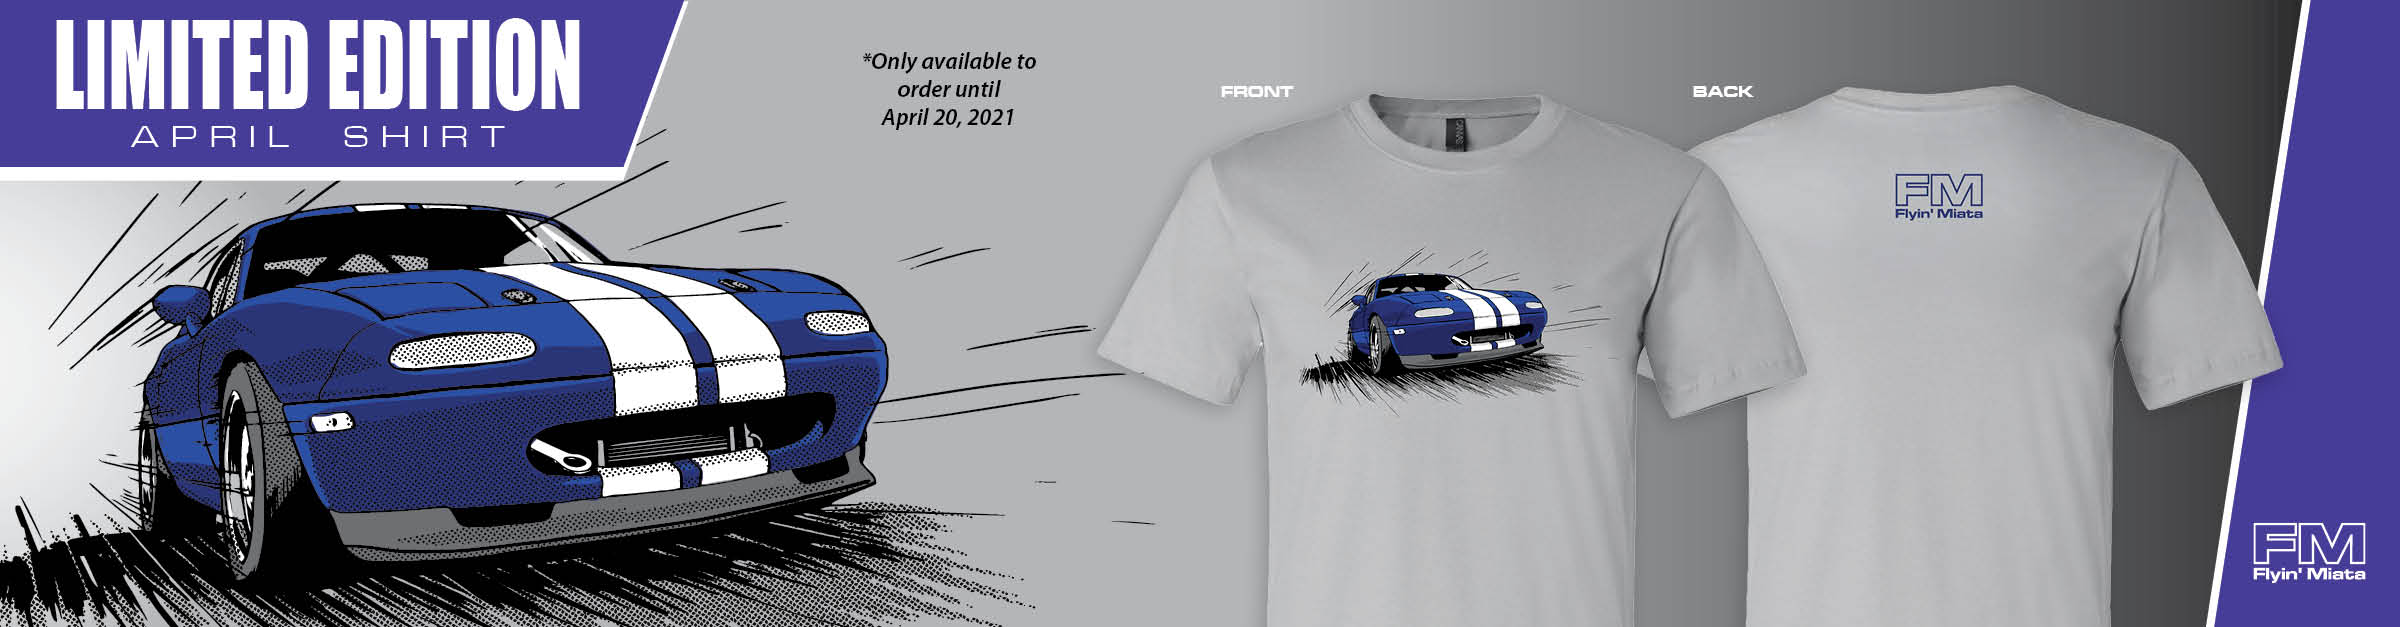 NEW! FM Exclusive Limited Edition April Shirt!